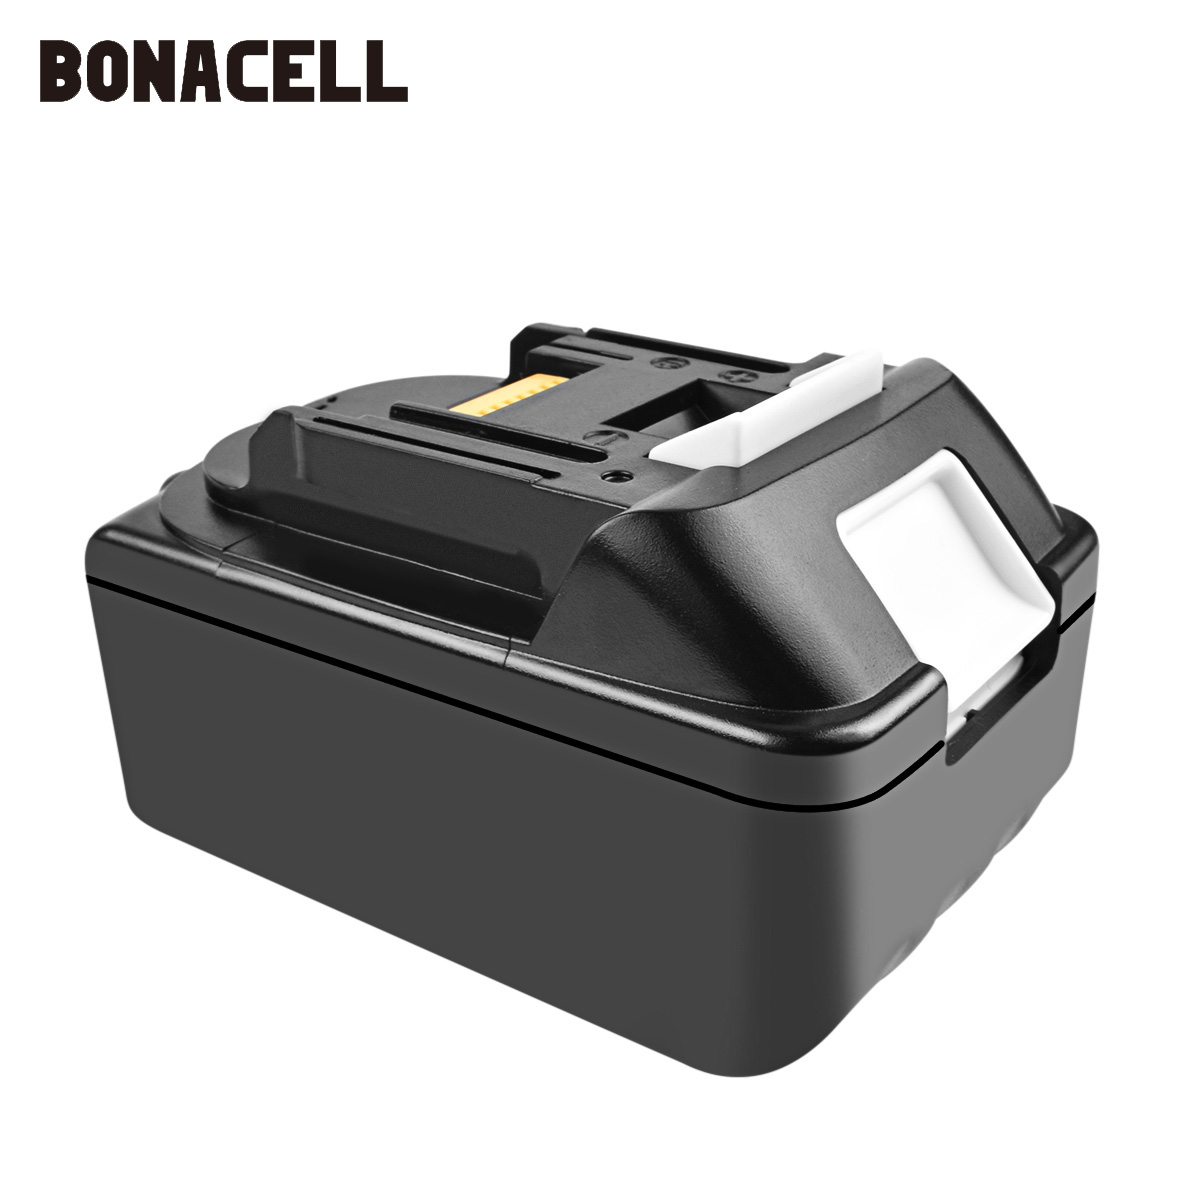 Image 3 - Bonacell 18V 4000mAh BL1830 Lithium Battery Pack Replacement for Makita Drill LXT400 194205 3 194309 1 BL1815 BL1840 BL1850 L30-in Replacement Batteries from Consumer Electronics